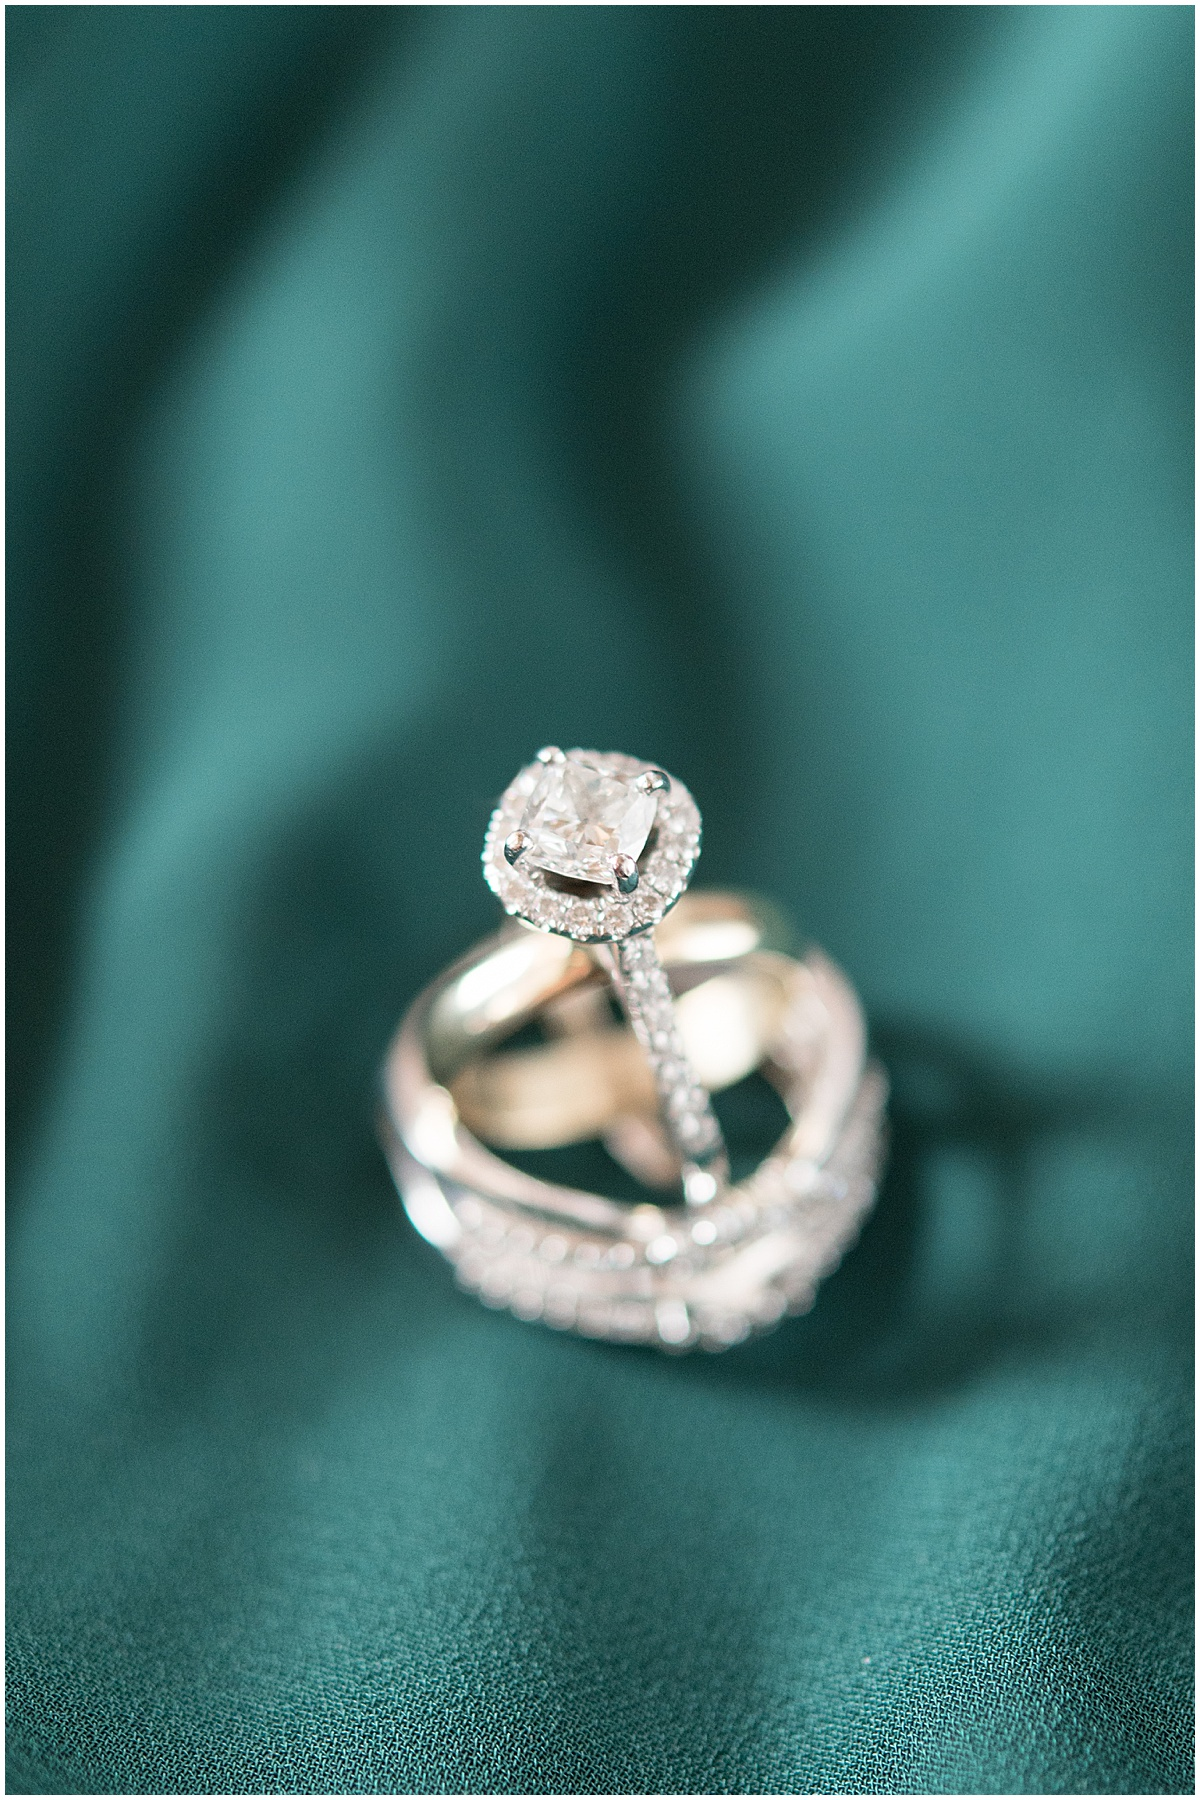 Ring details from eMbers Venue wedding in Rensselaer, Indiana